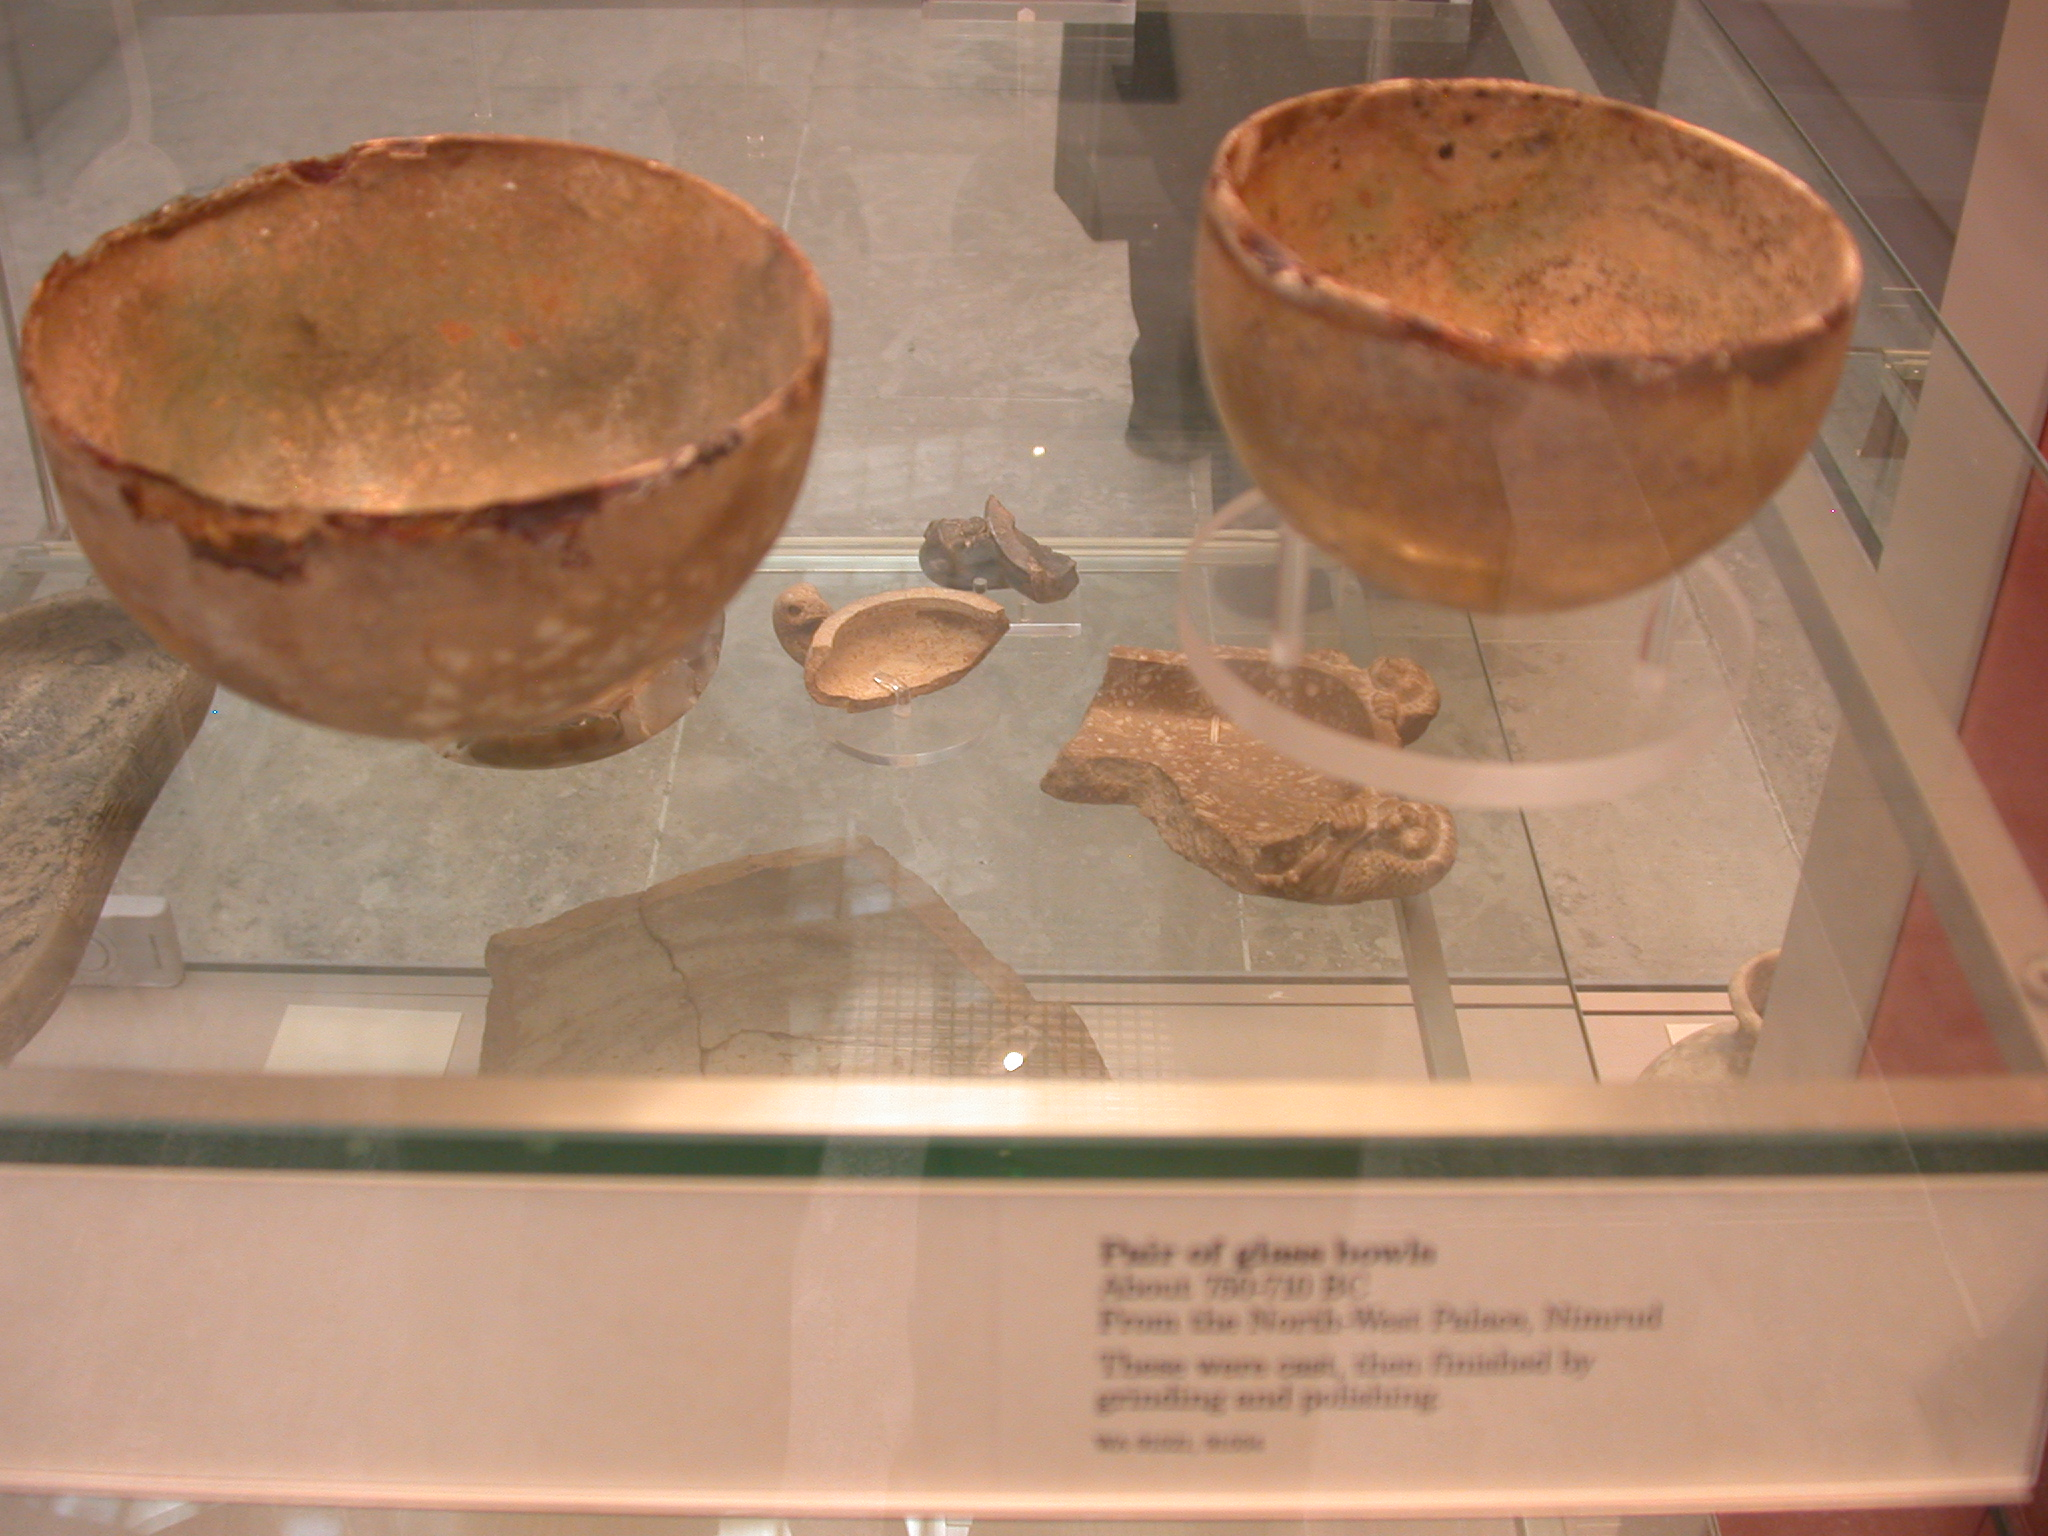 Pair of Glass Bowls, About 790-710 BCE, Northwest Palace, Nimrud, Assyria, in British Museum, London, England